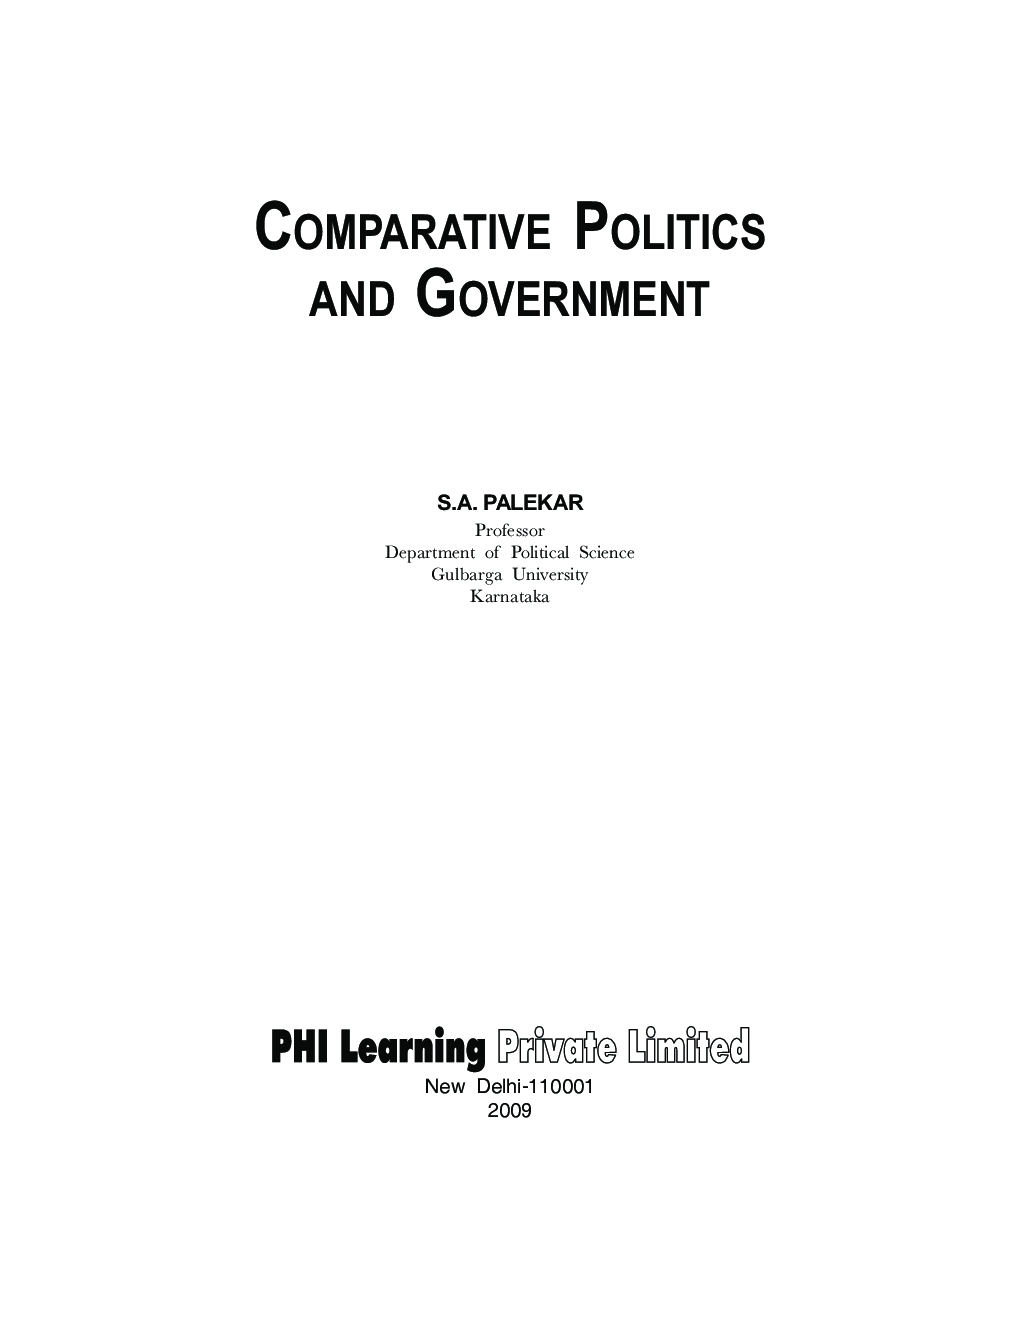 approaches to comparative politics pdf